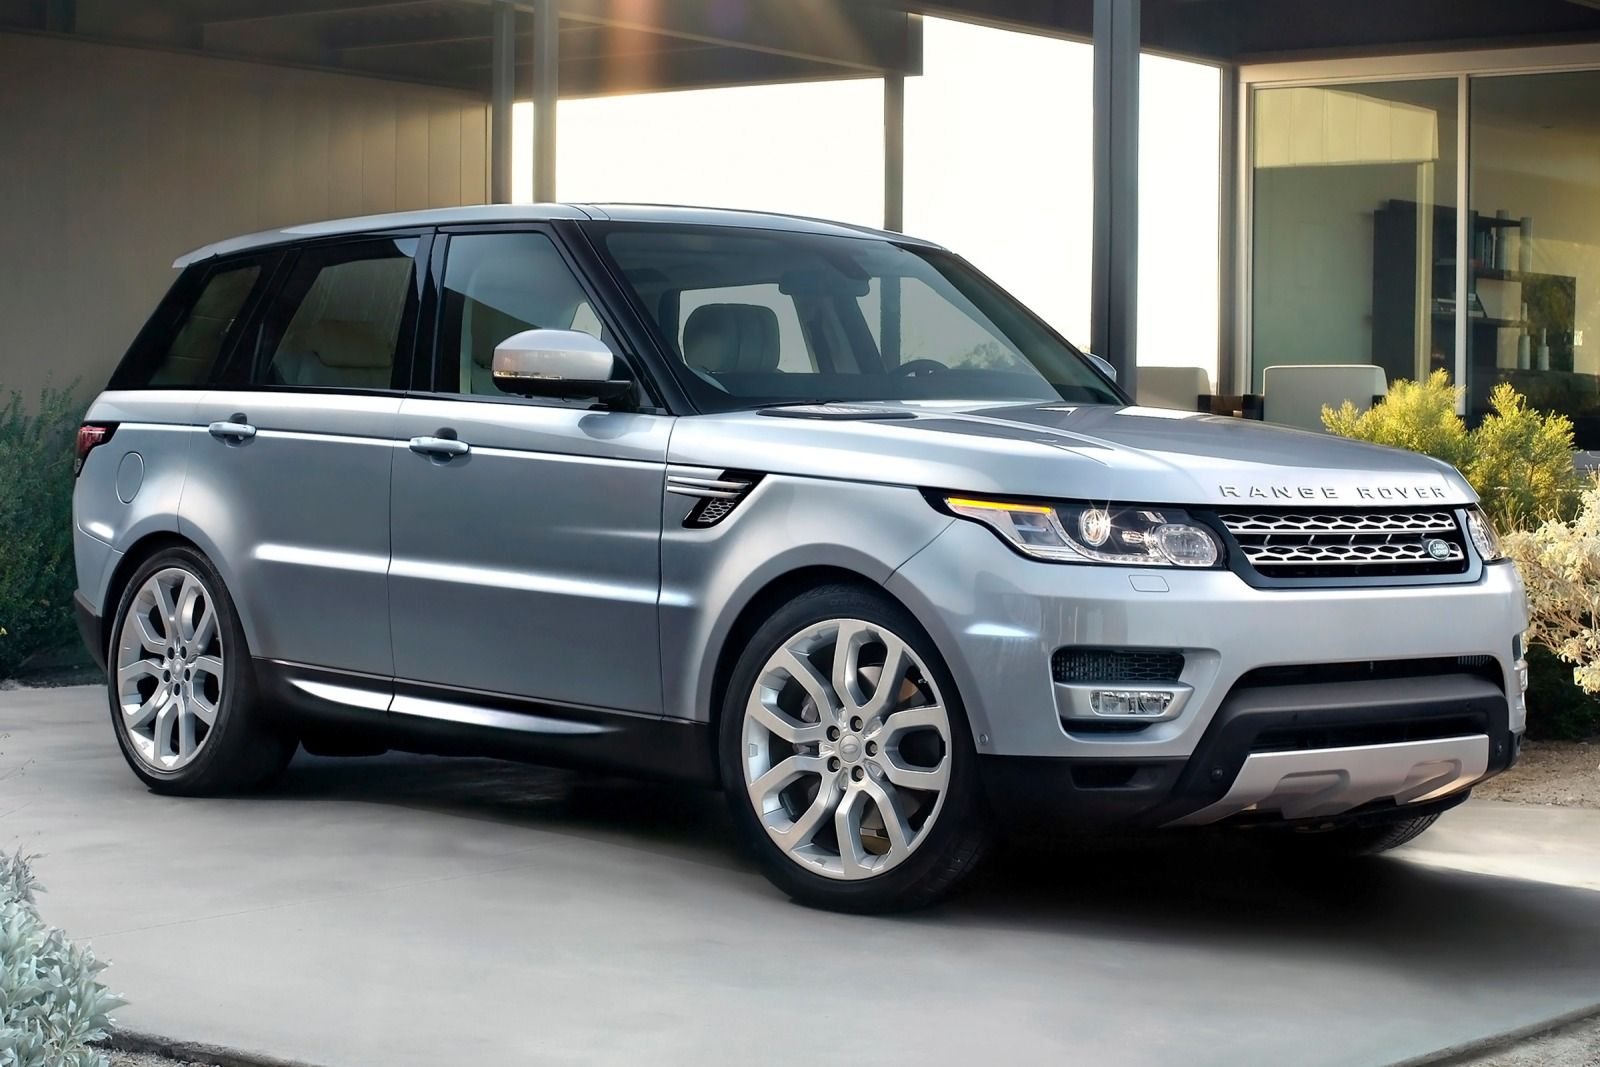 2015 land rover range rover sport image 3. Black Bedroom Furniture Sets. Home Design Ideas